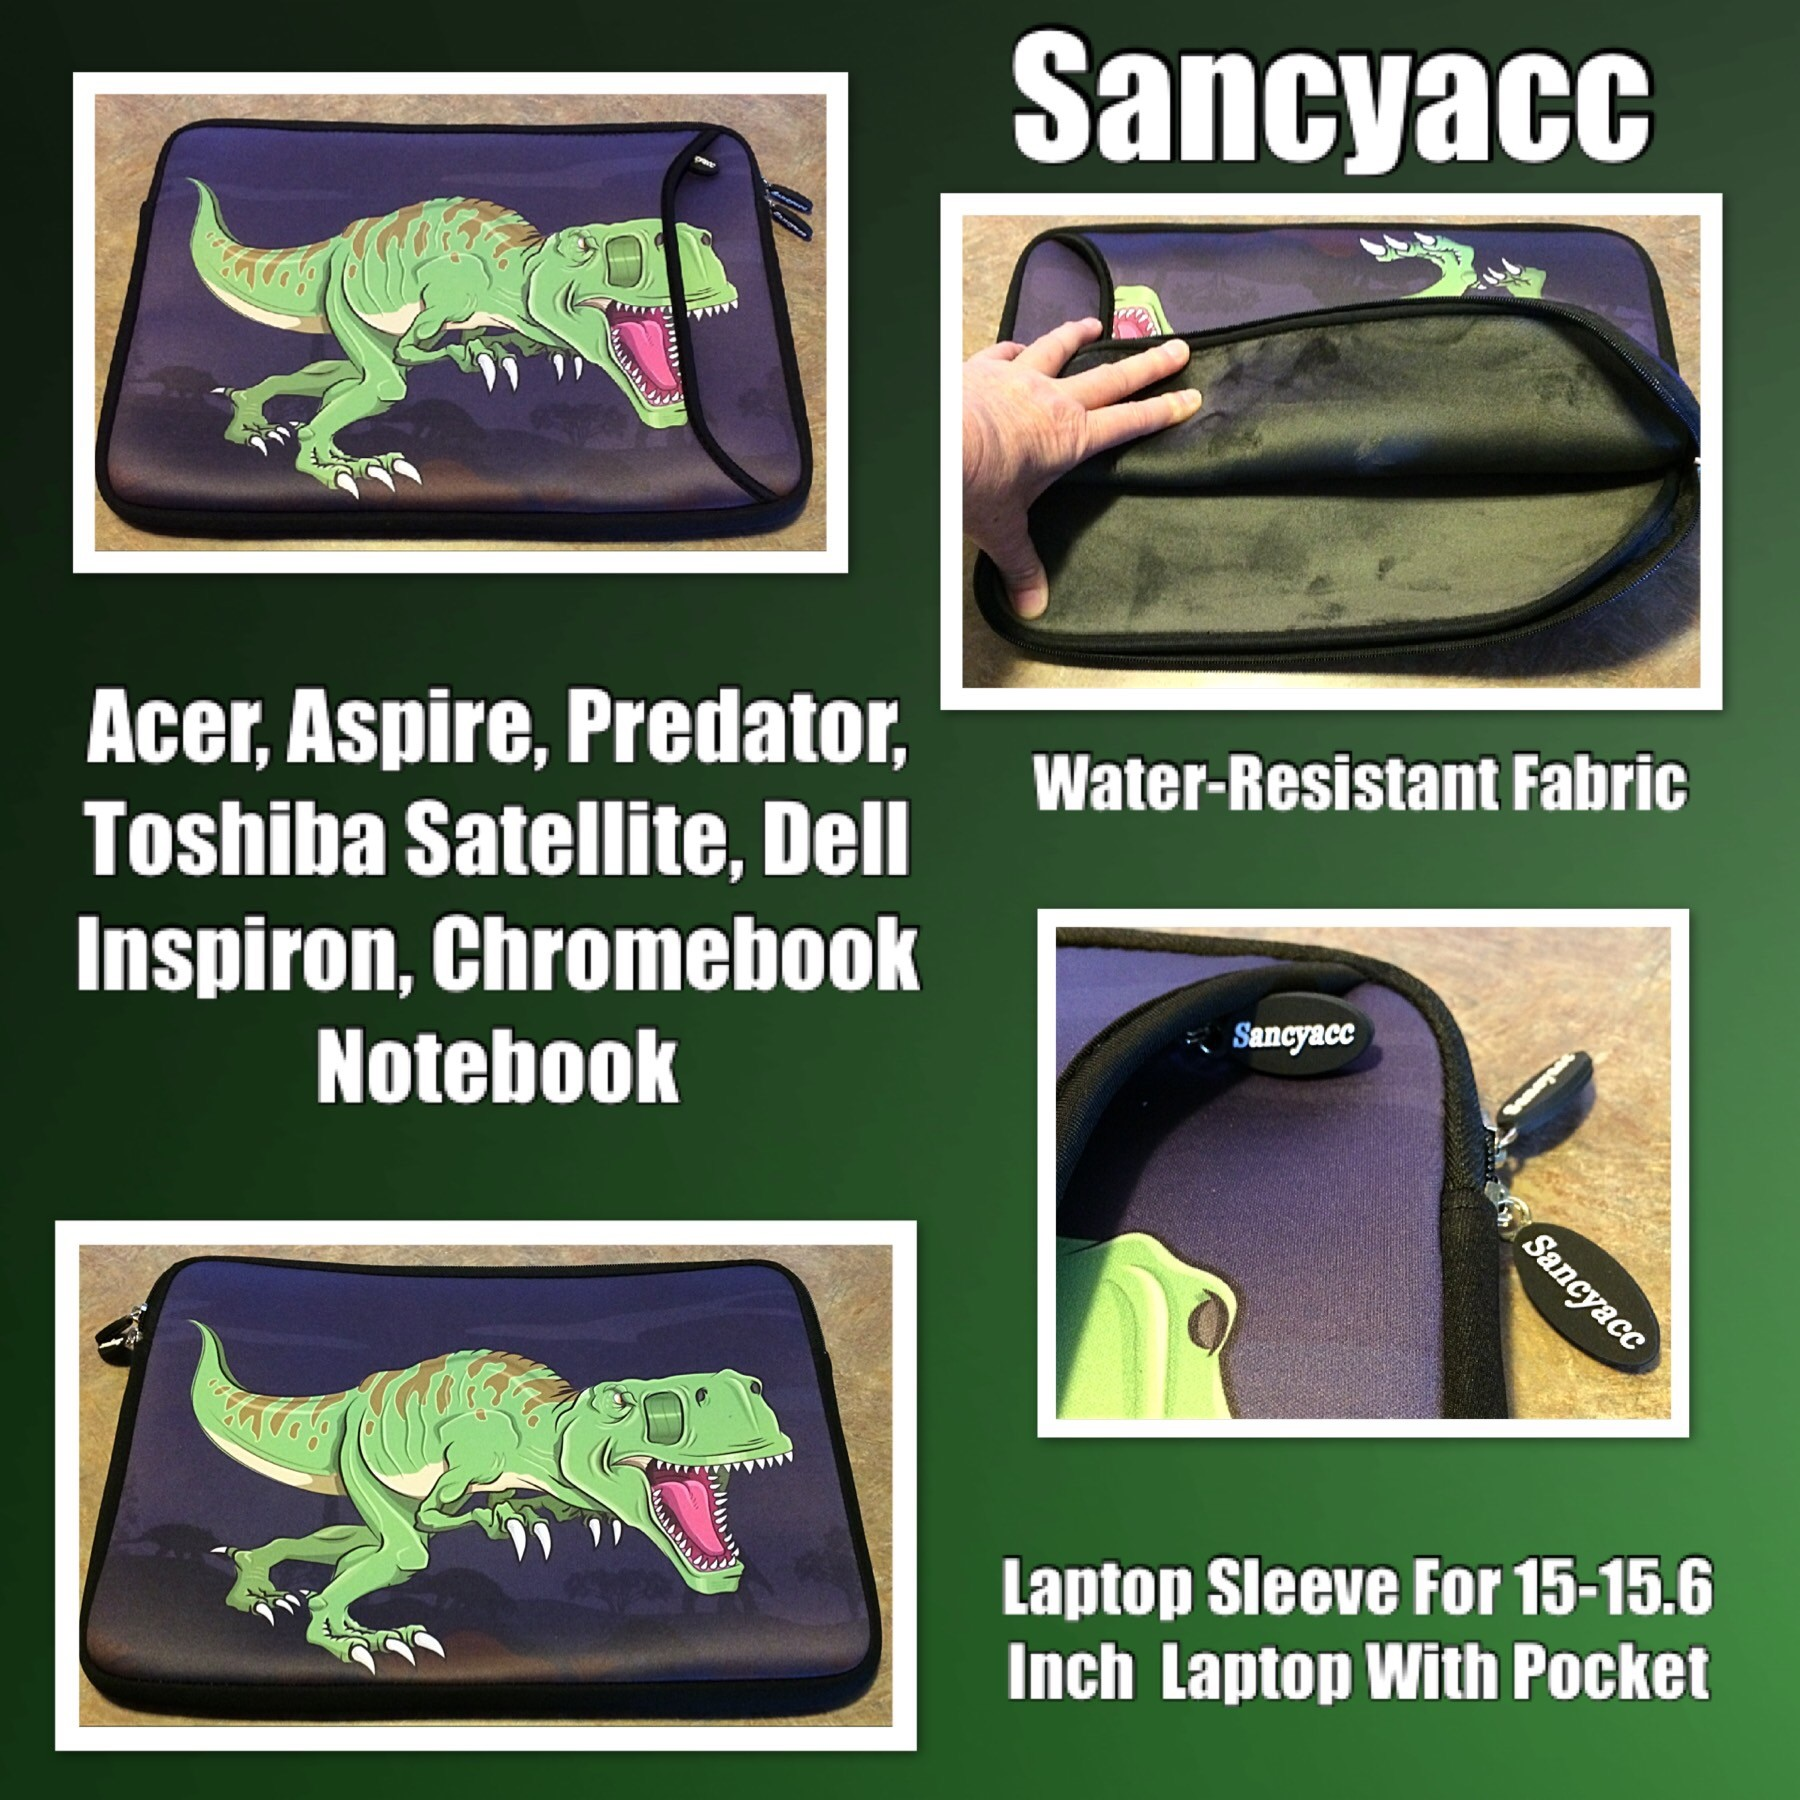 Sancyacc Laptop Sleeve for 15-15.6 Inch, Water-Resistant Fabric Laptop Case With Pocket For Acer, Aspire, Predator, Toshiba Satellite, Dell Inspiron, Chromebook Notebook (Dino)